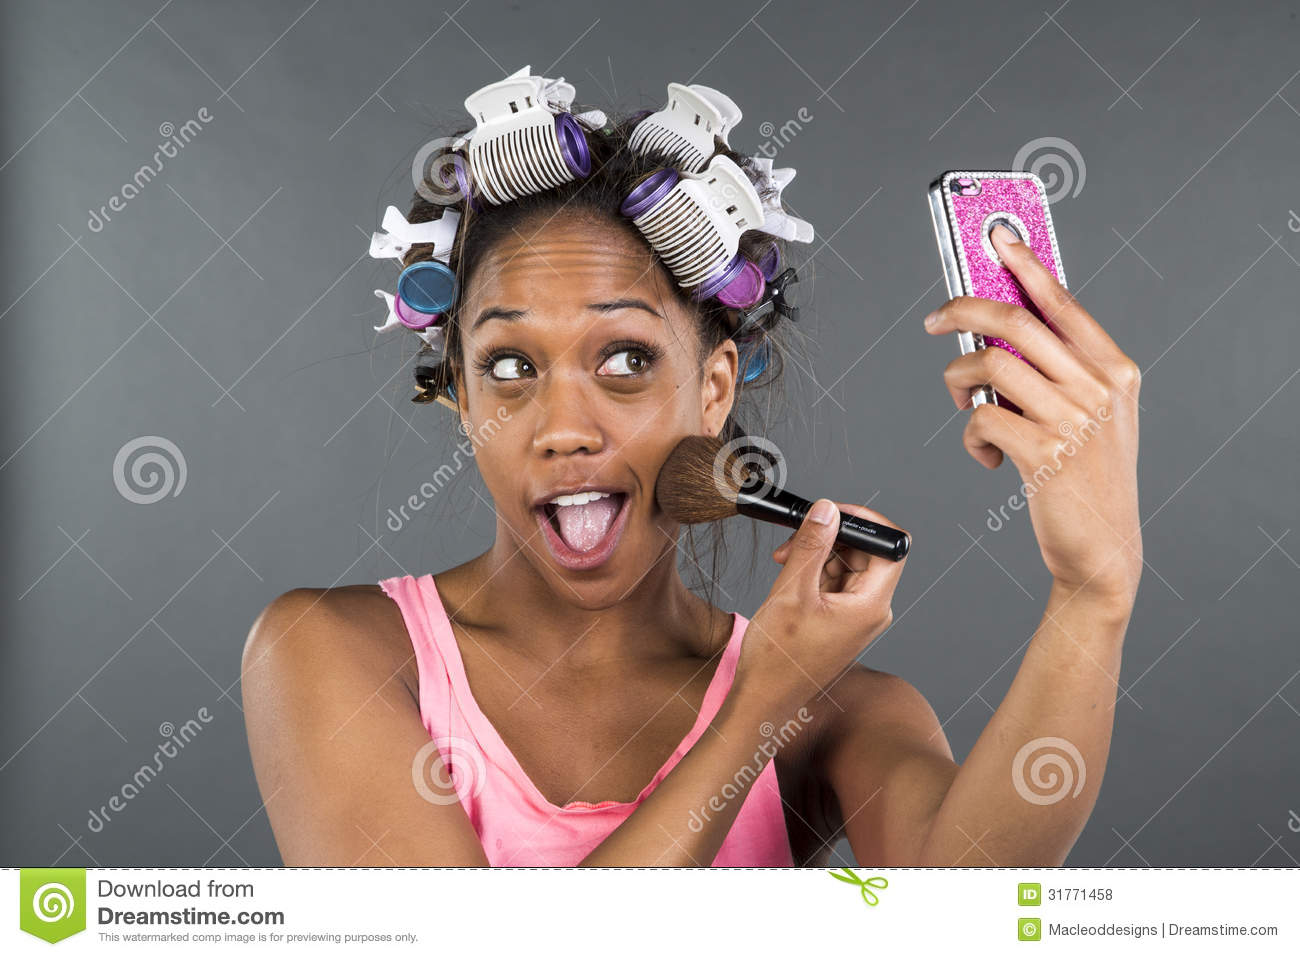 A Girl With Curlers In Her Hair Looking At Phone Royalty